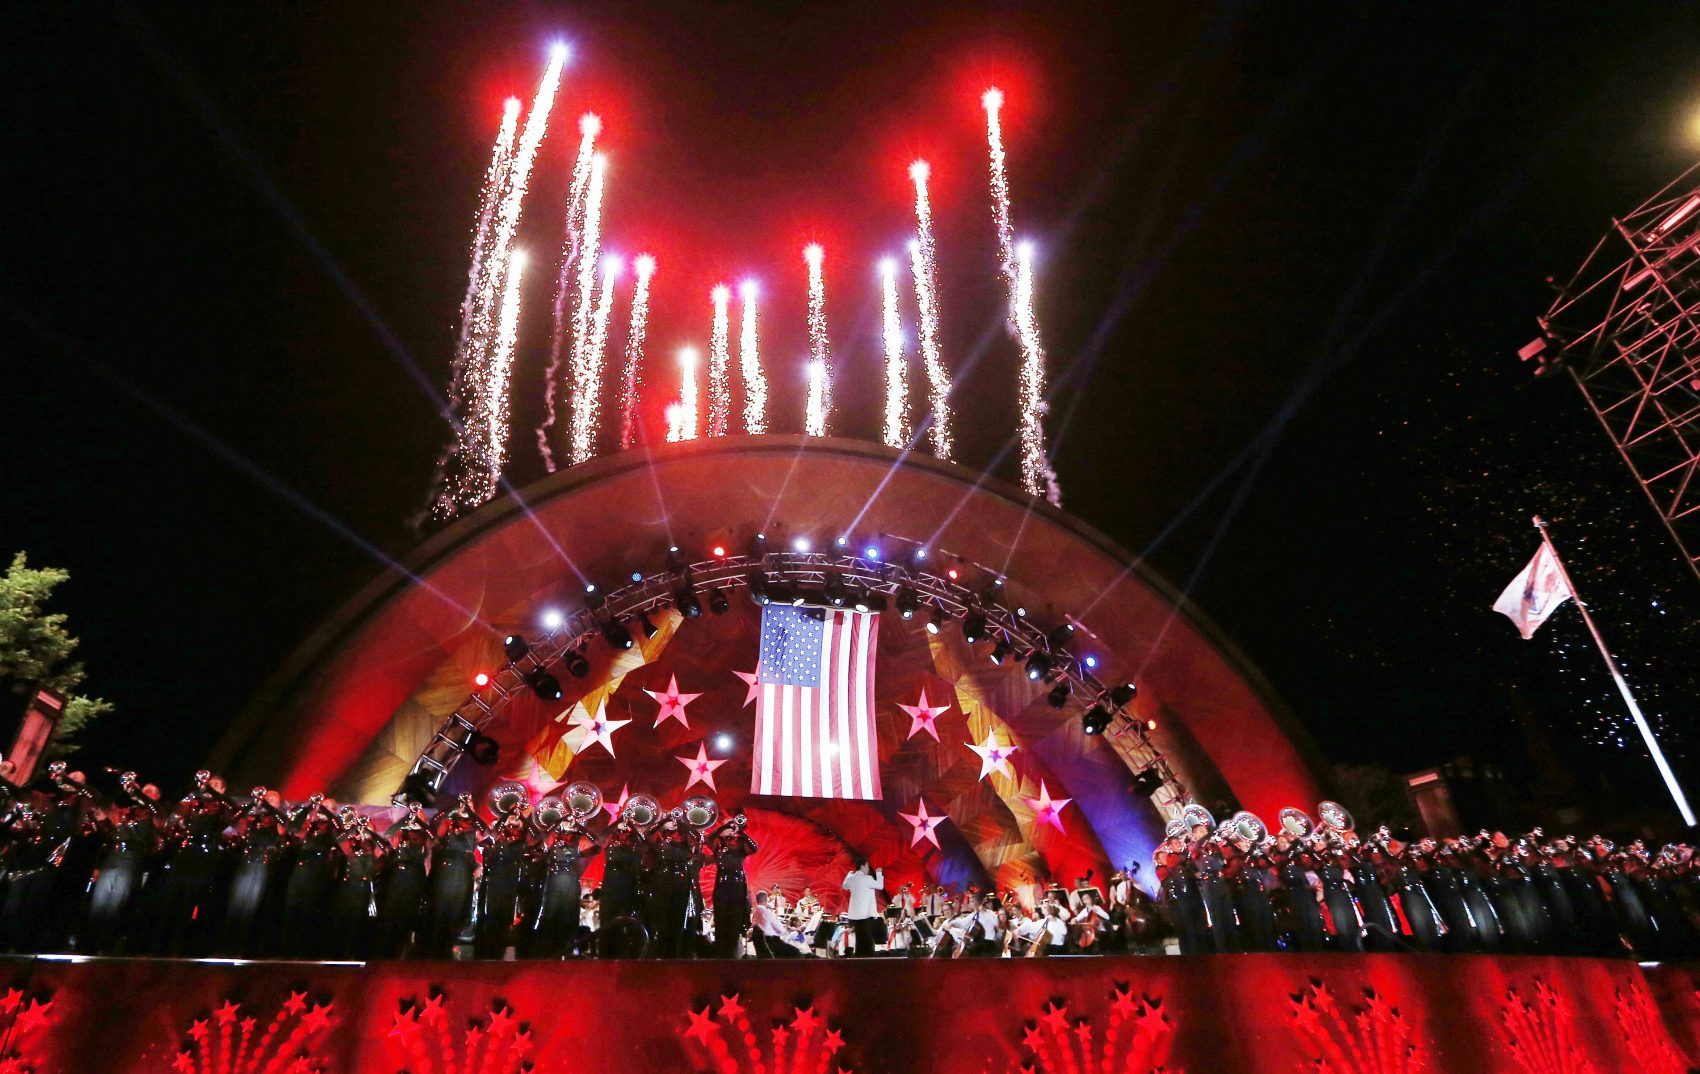 Fireworks shoot from the top of the Hatch Shell during rehearsal for the annual Boston Pops orchestra Fourth of July concert. (Michael Dwyer/AP File)